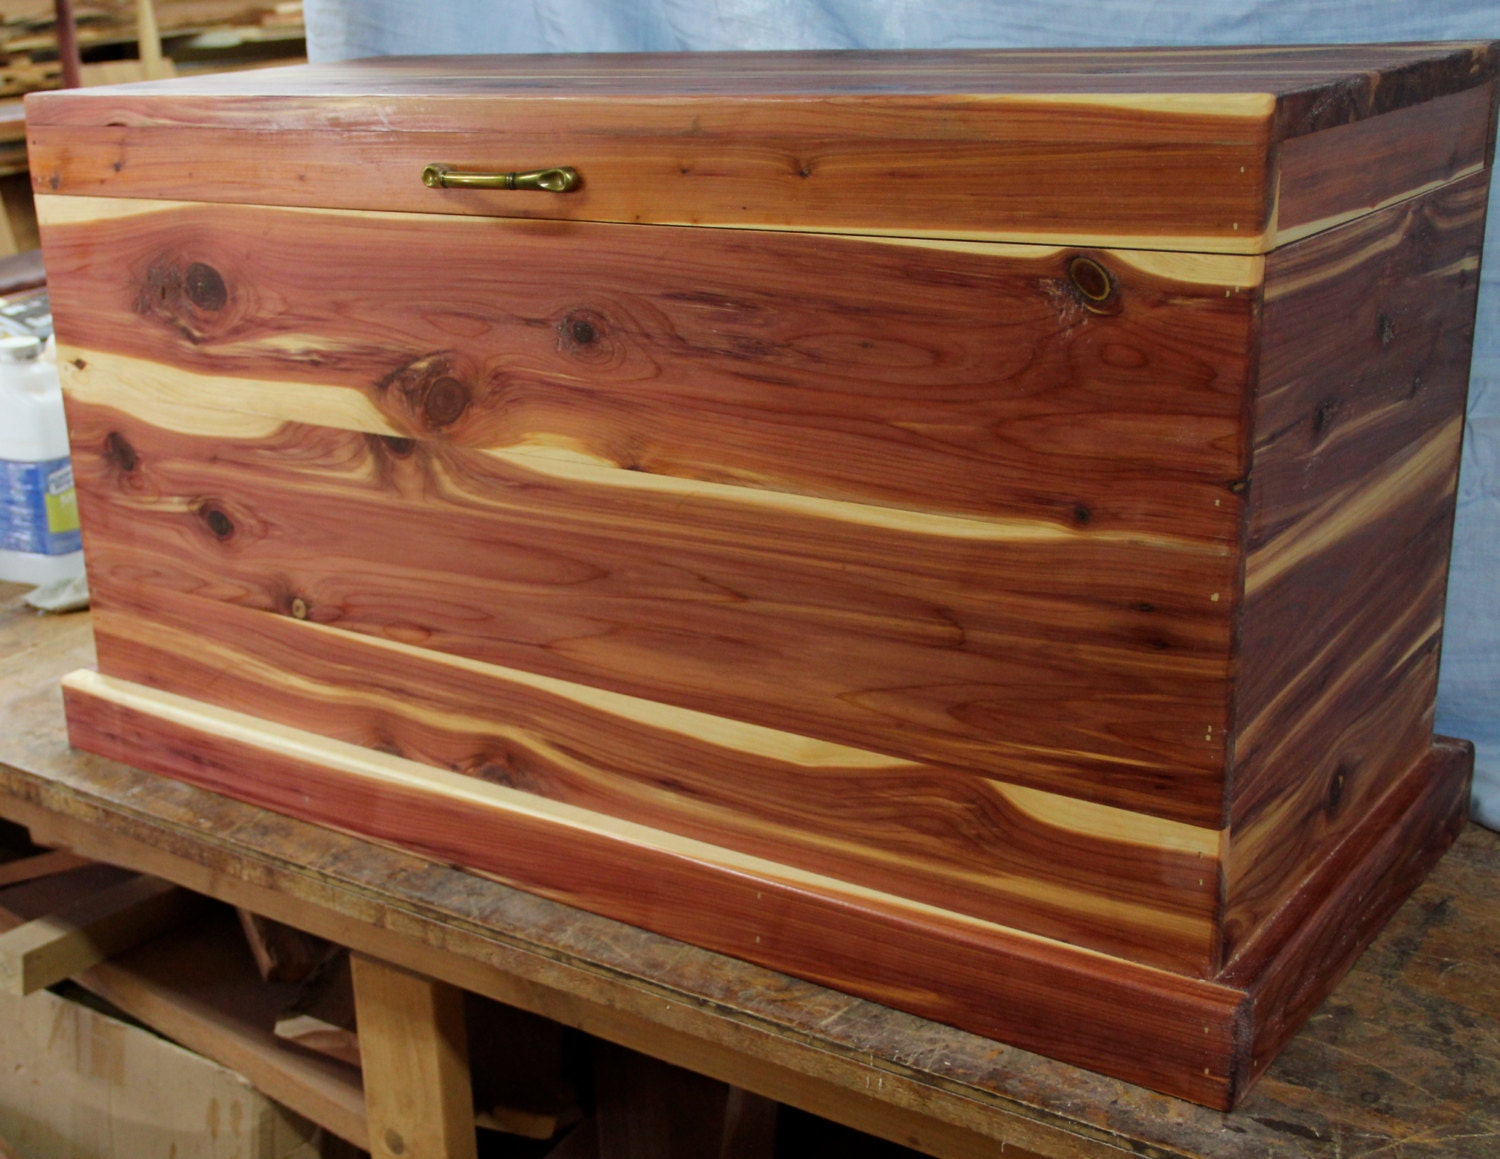 Cedar chest blanket box hope toy wood